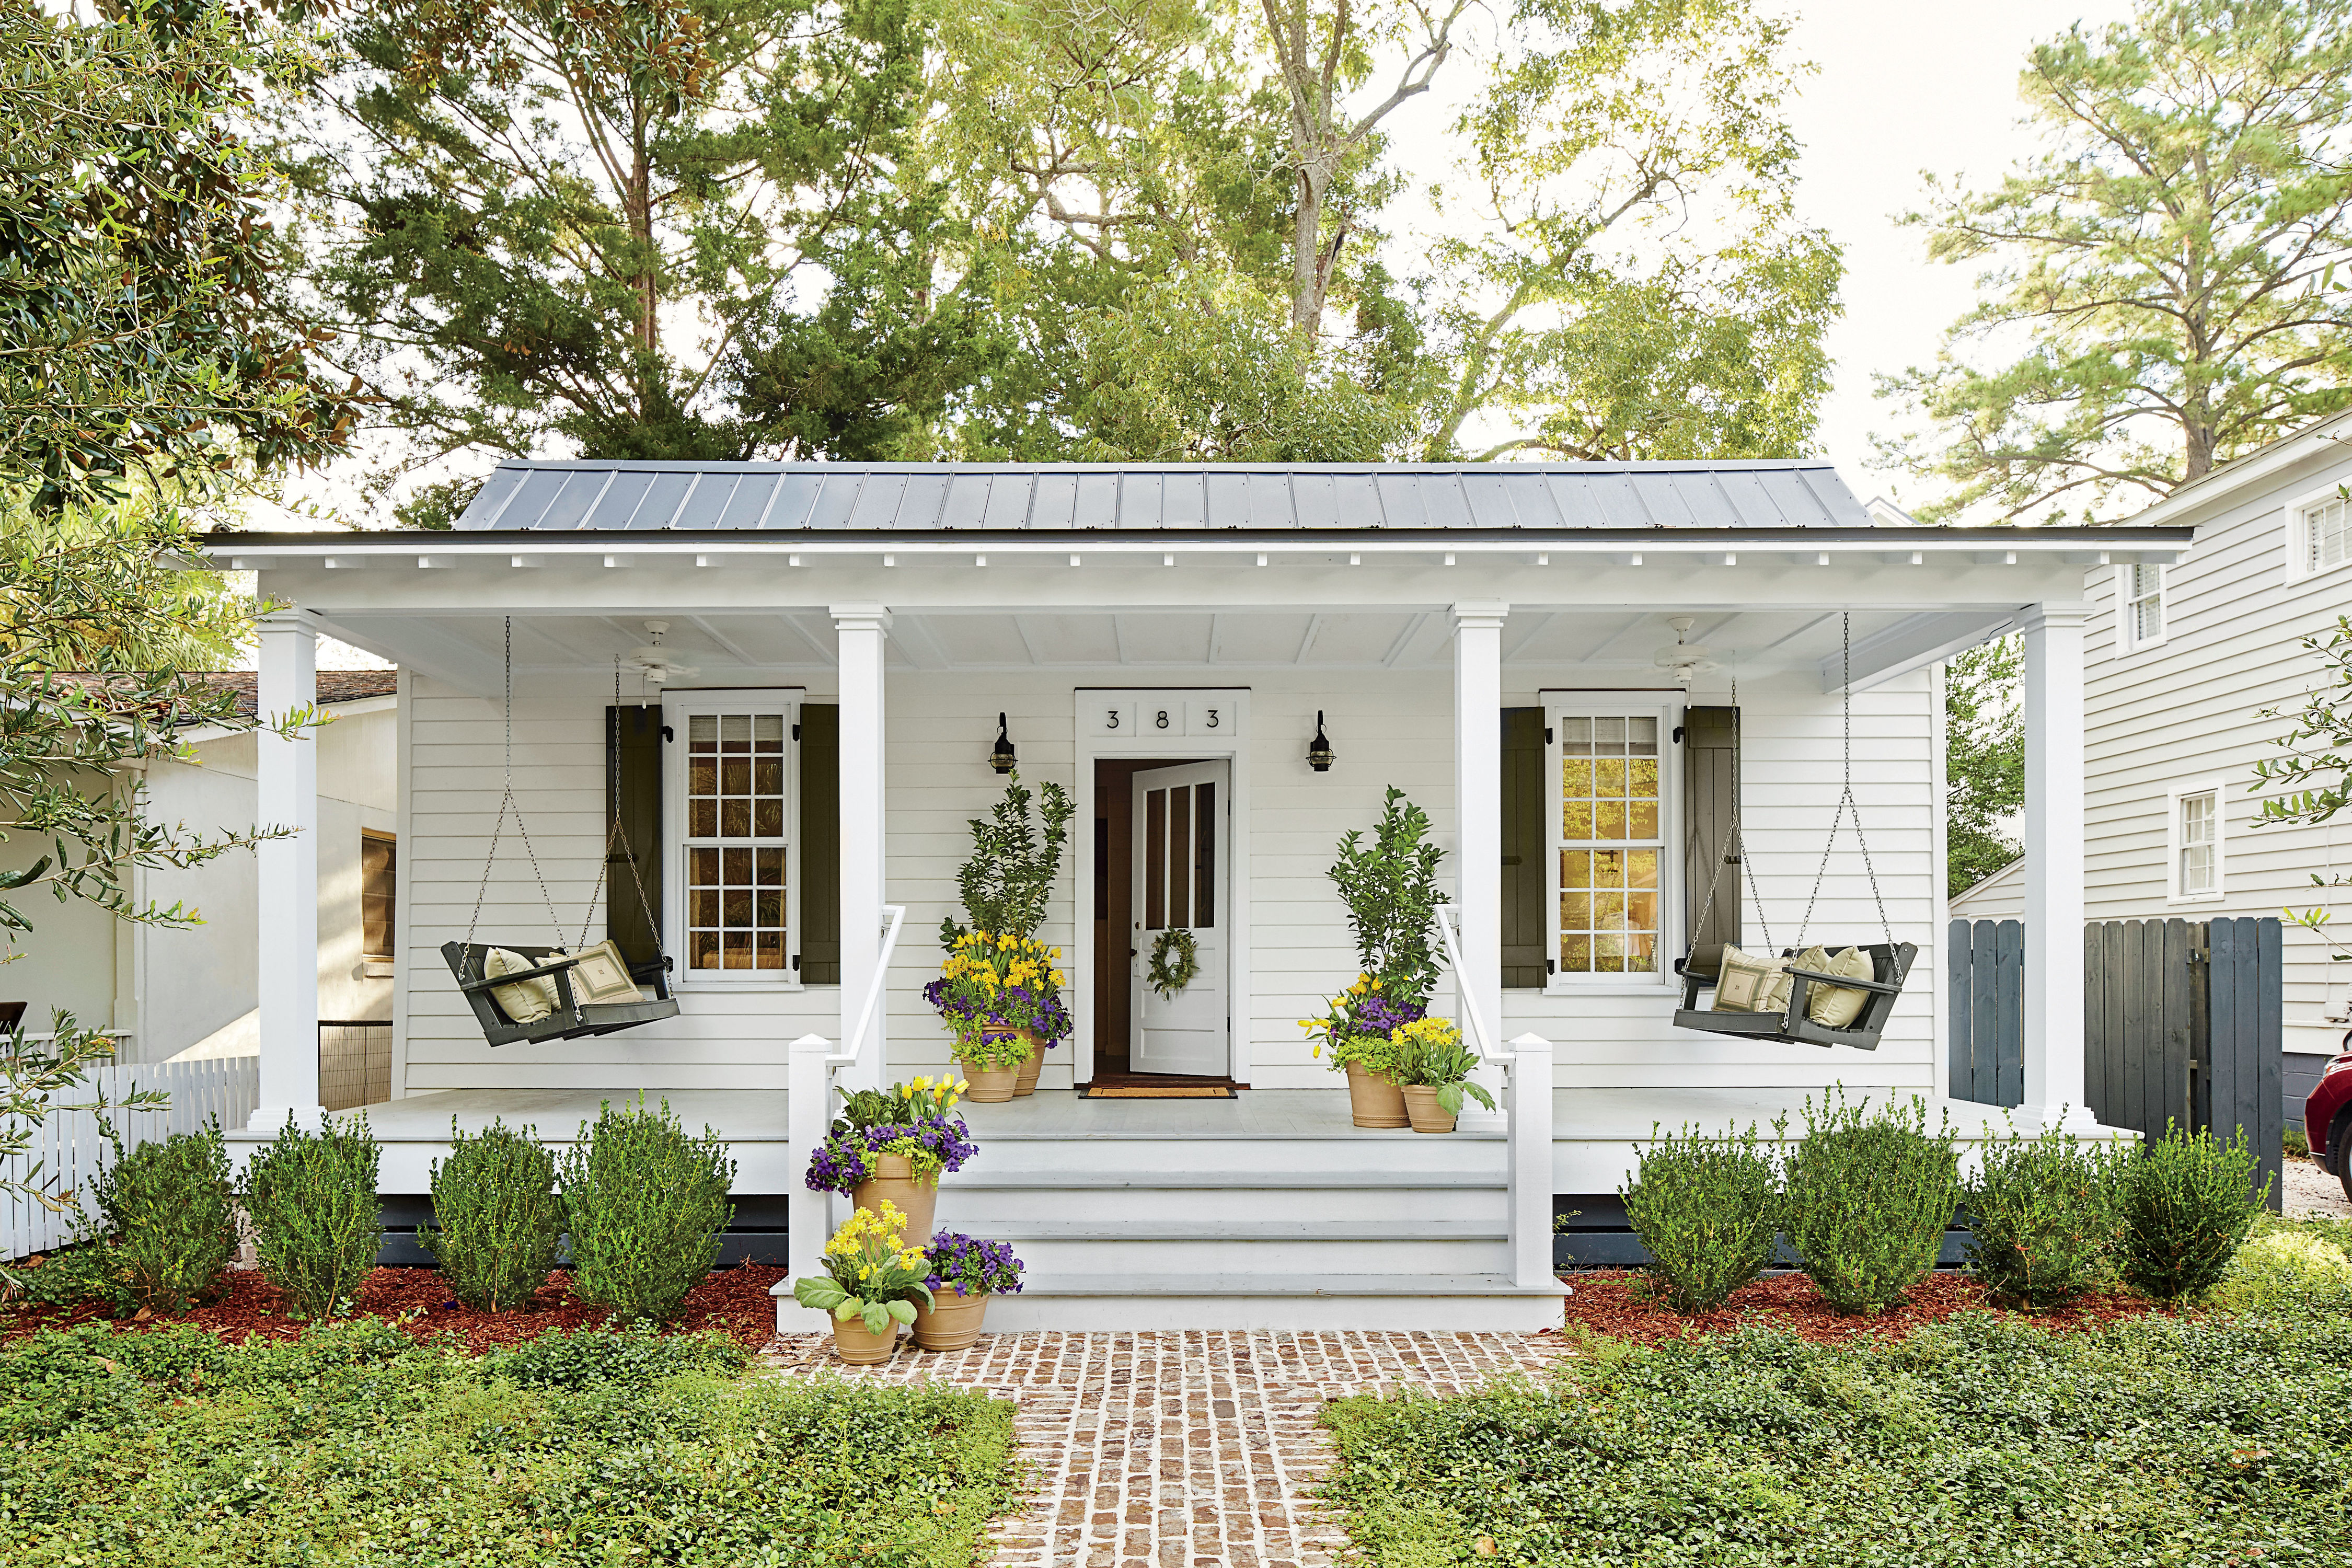 Steal These 5 Space-Saving Tips from Tiny Houses